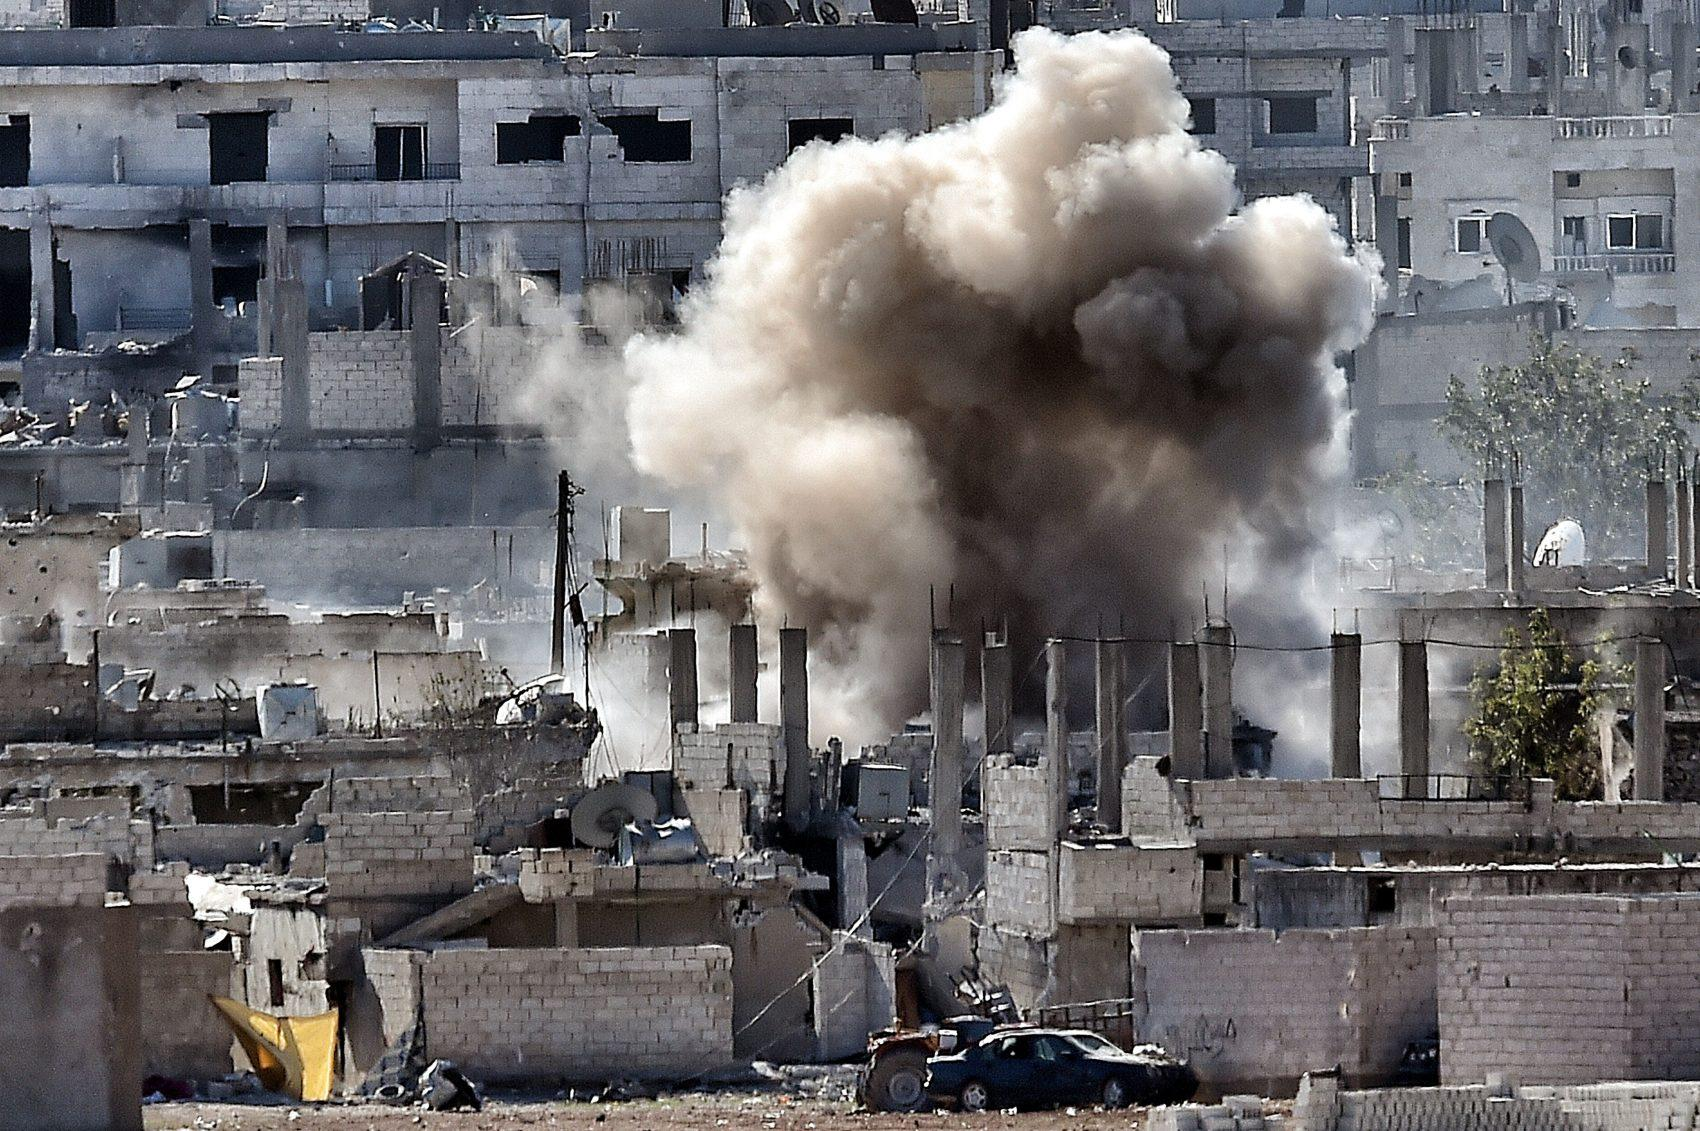 U.S. policy toward fighting Islamic State in Syria unchanged